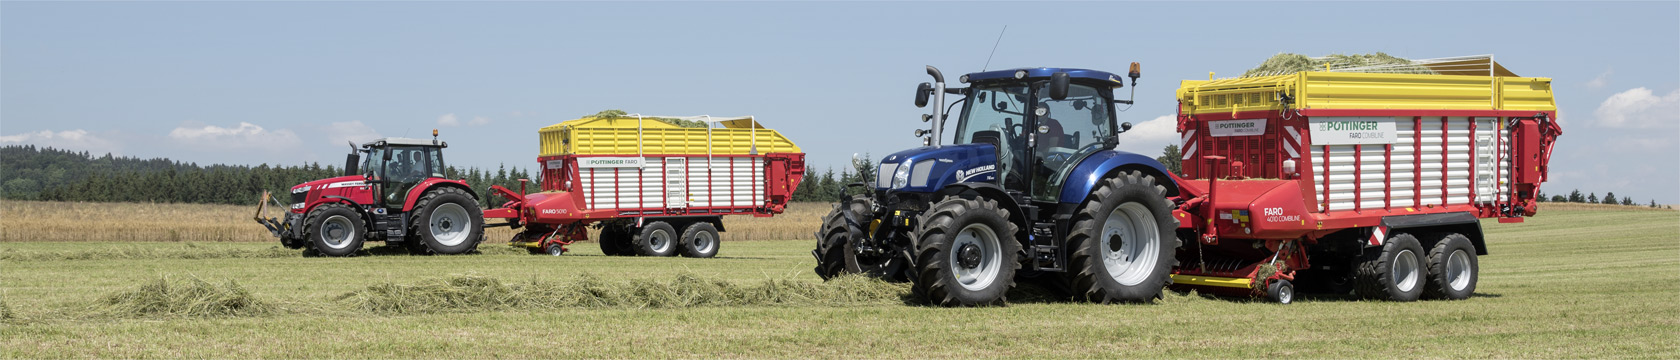 FARO Silage wagon with loading rotor